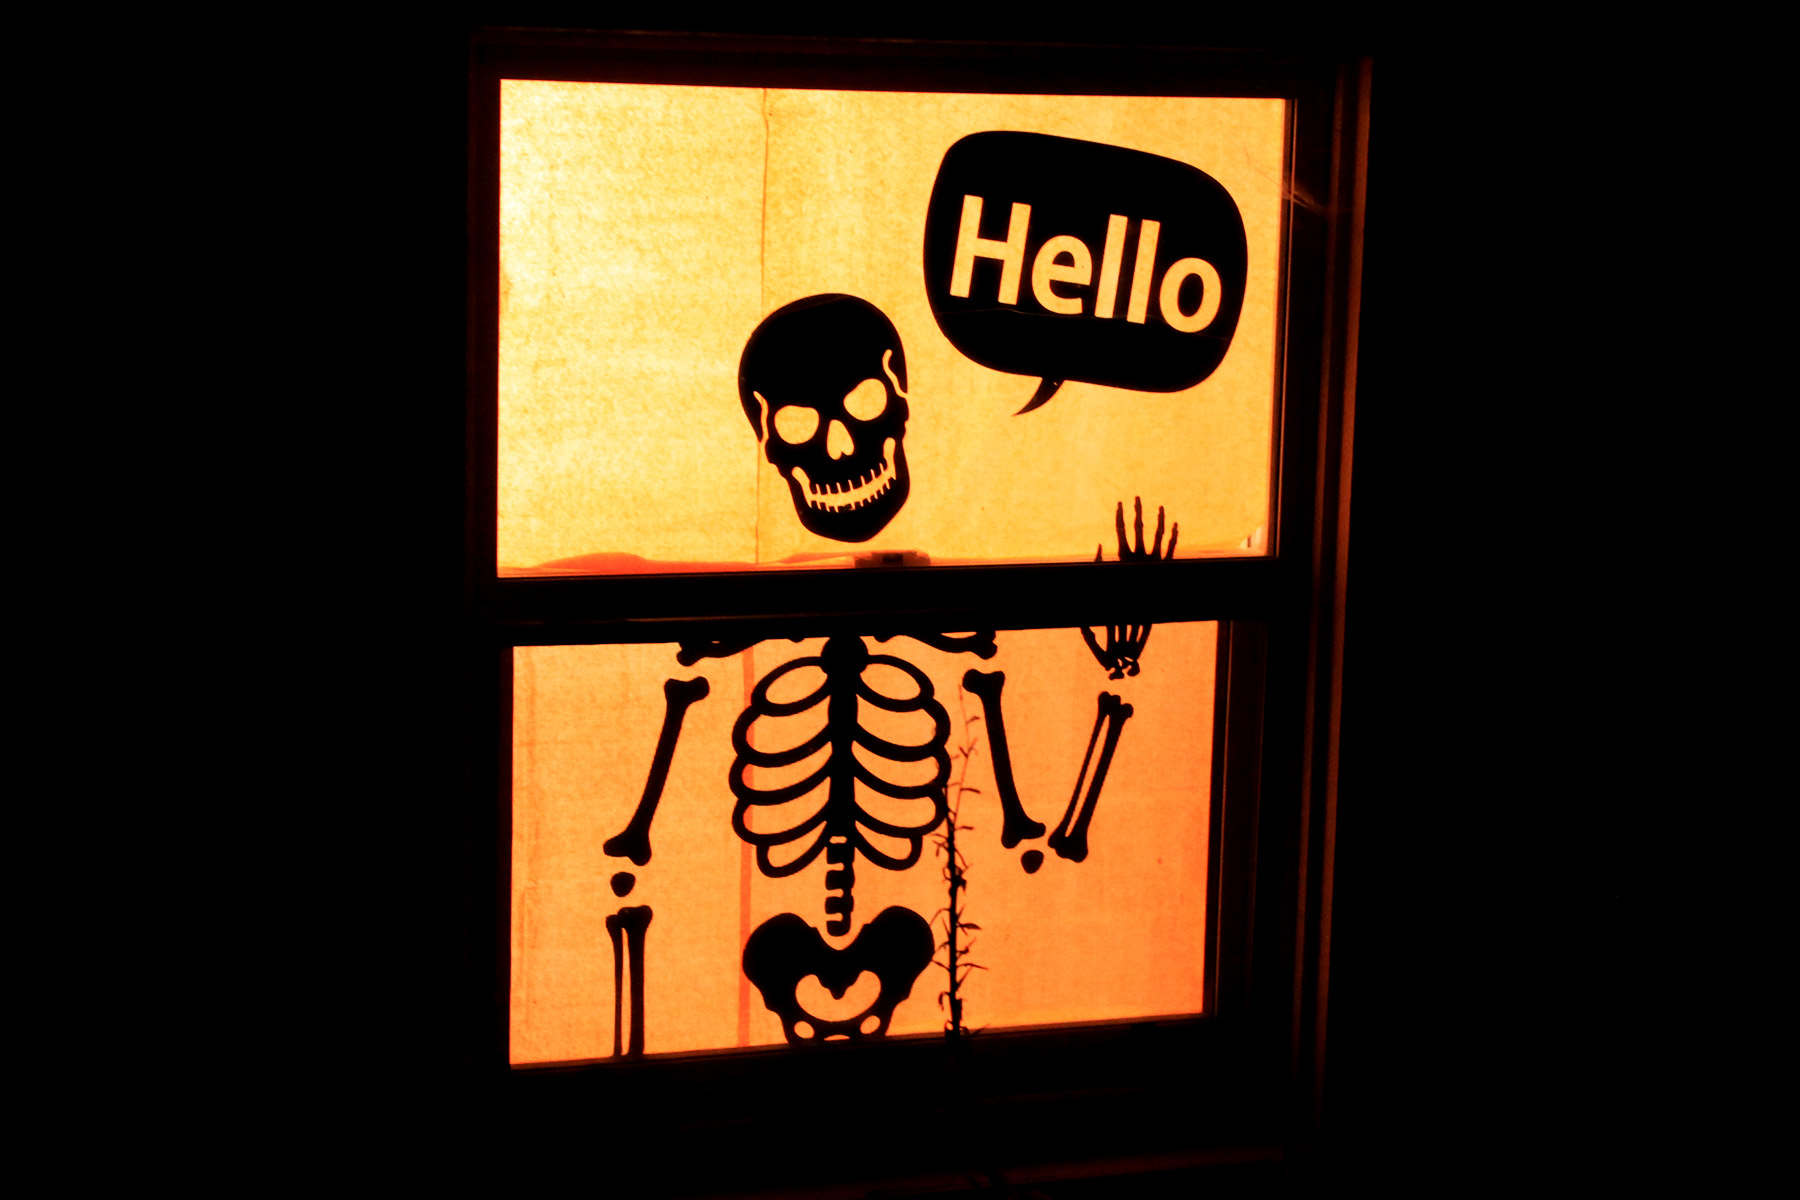 related - Halloween Window Decor